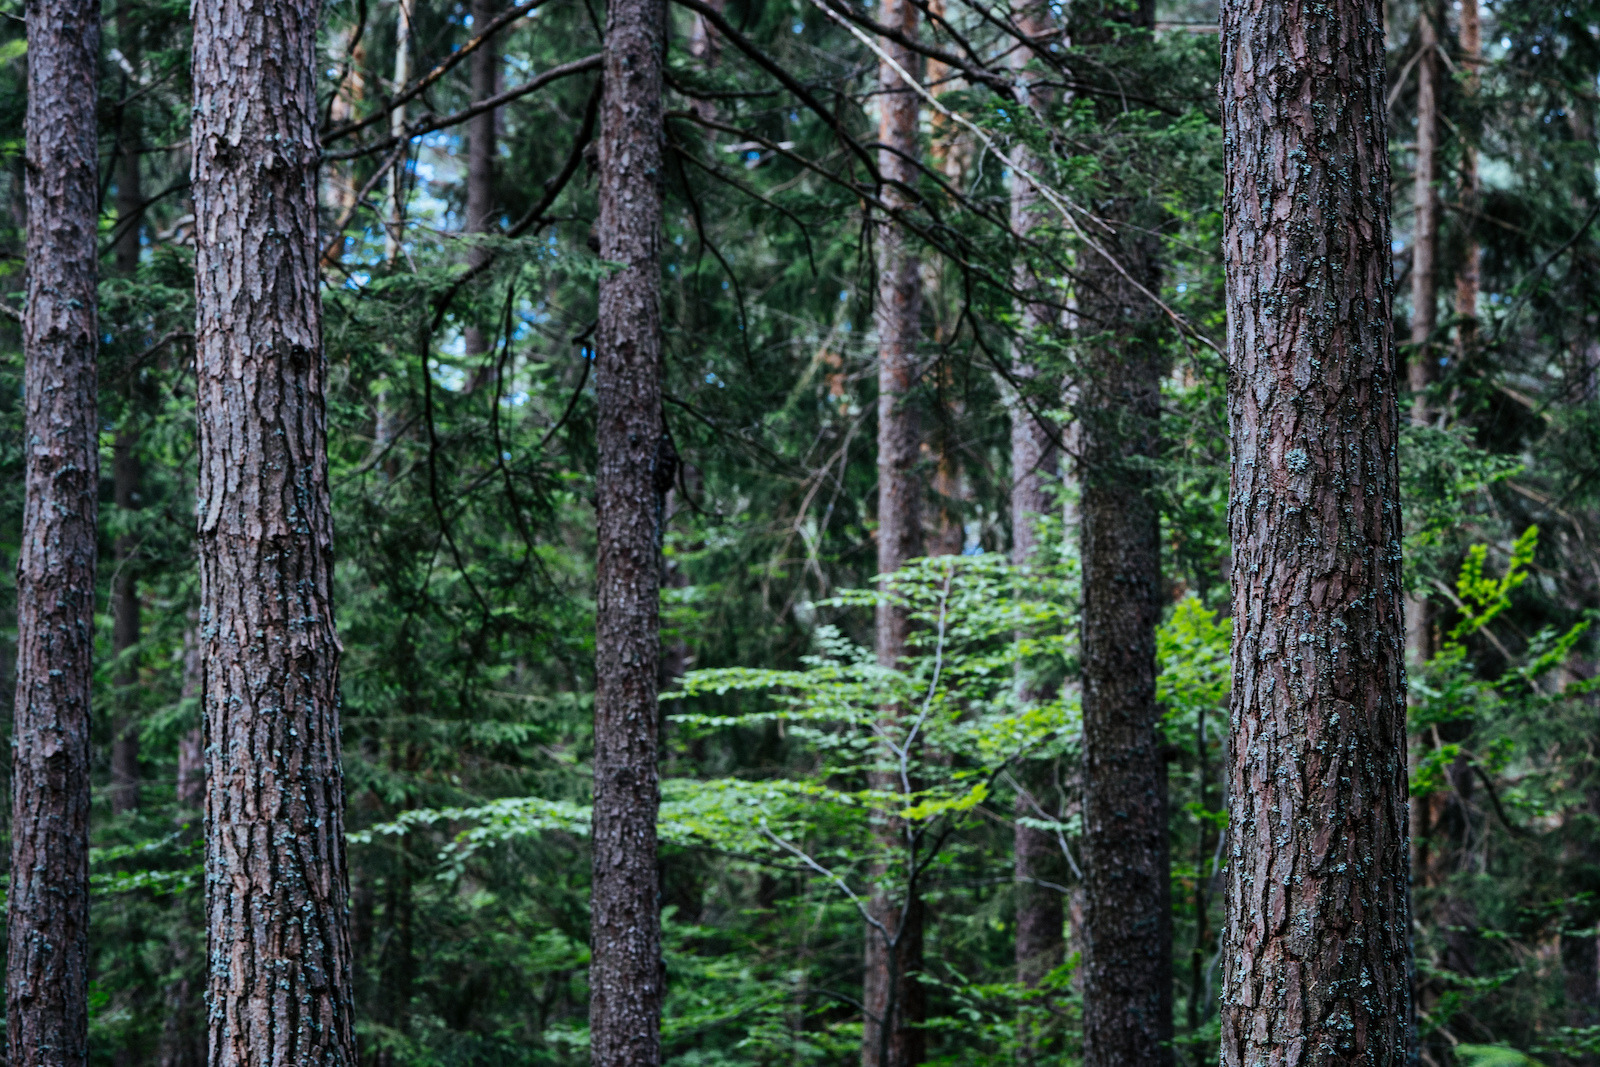 Tall straight pines make pretty forests. We are liking it here in Petzen Jamnica.